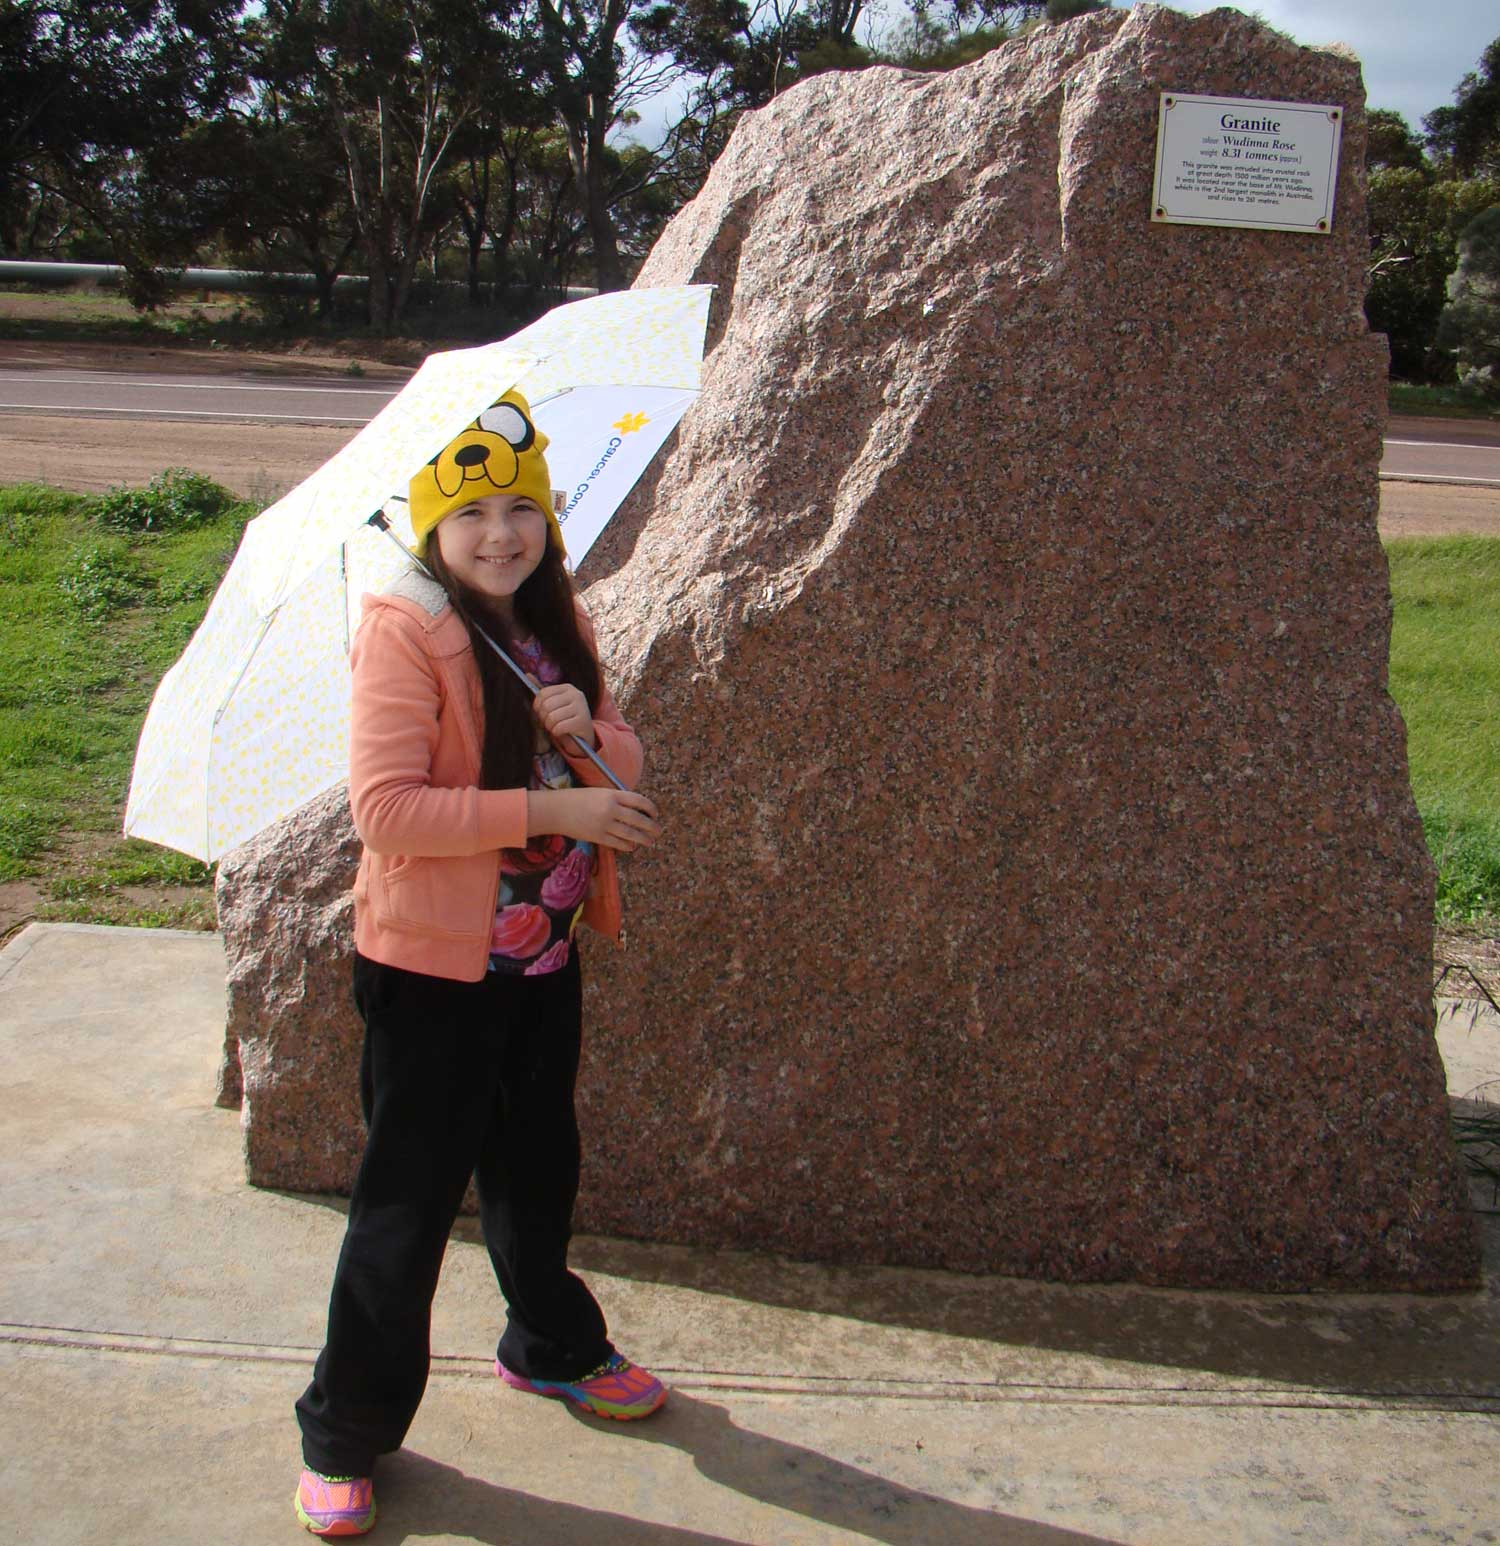 Tookii things to do with kids at Wudinna one of the outdoor activities for kids